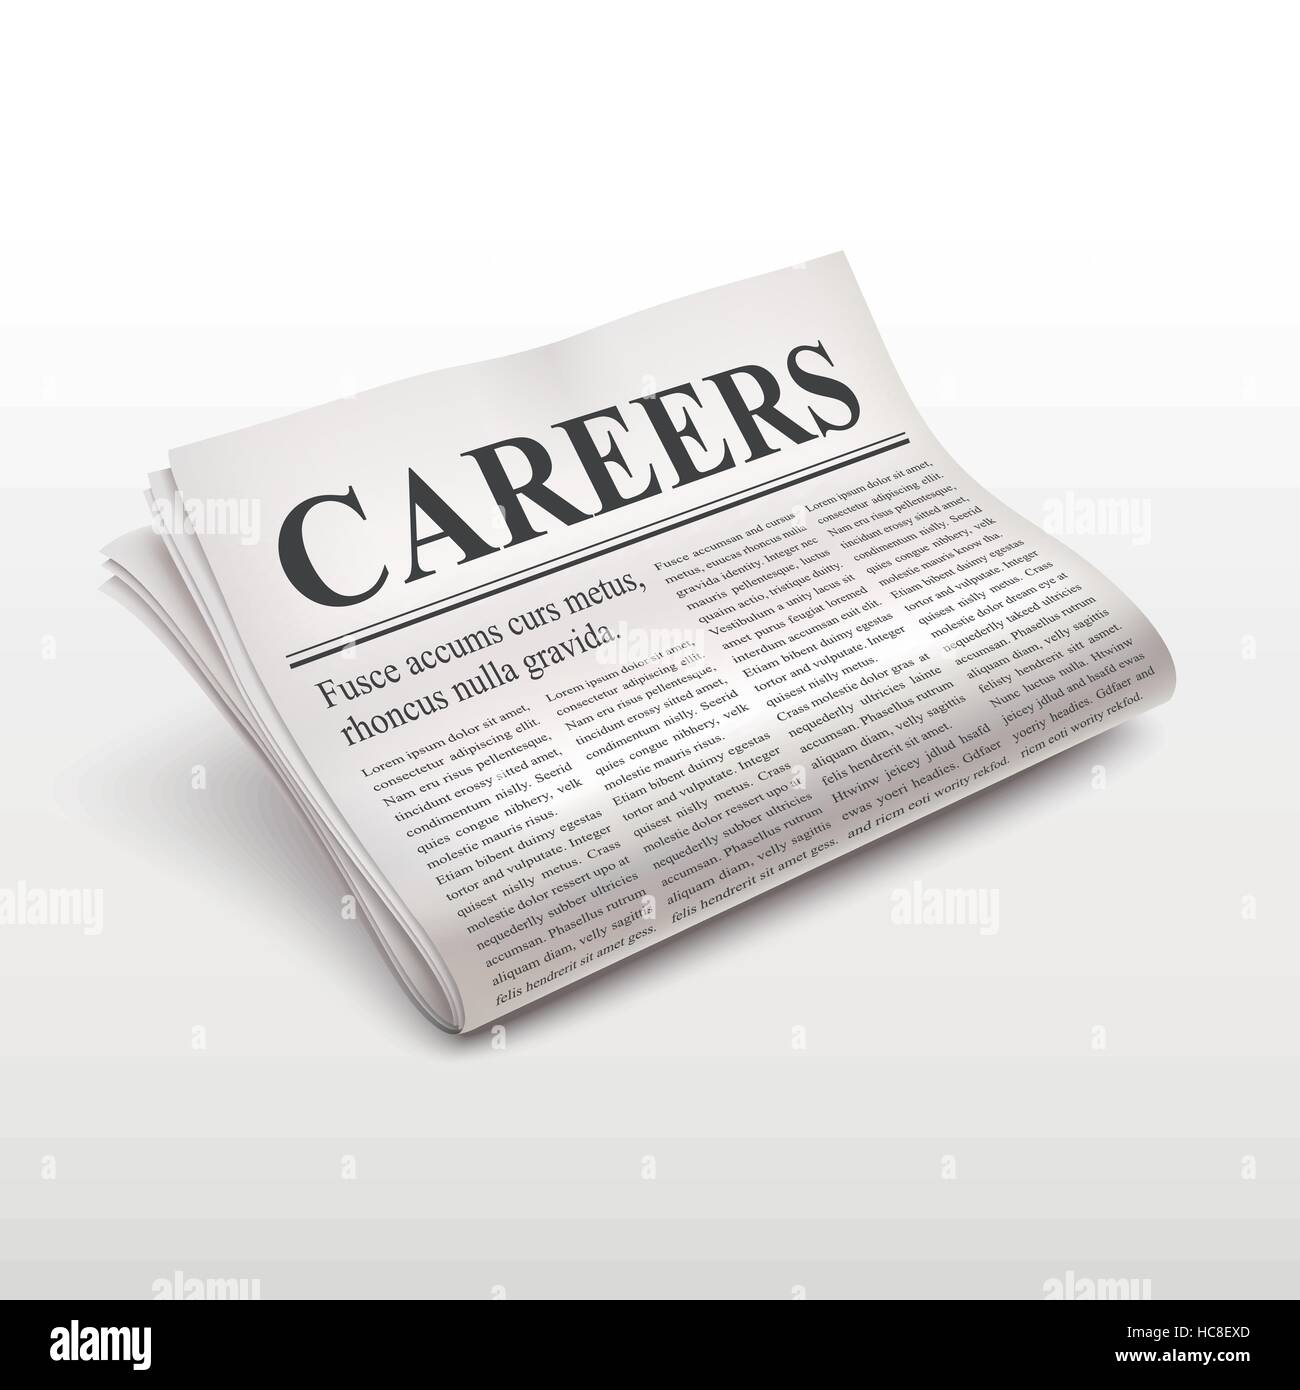 careers word on newspaper over white background - Stock Image